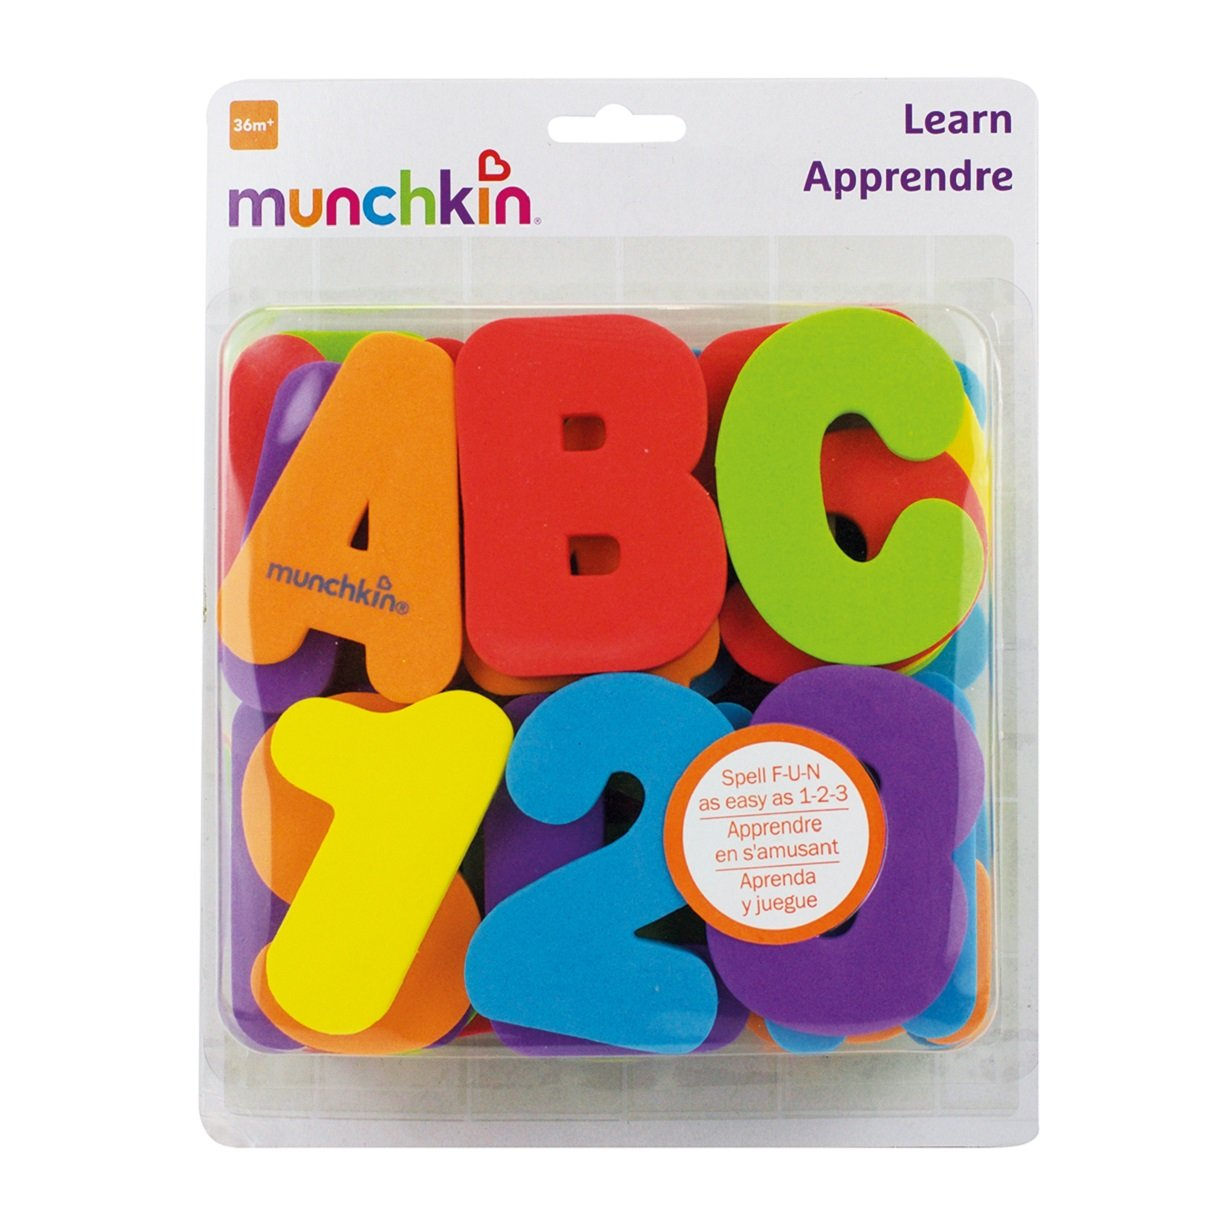 Munchkin Learn Bath Toy Letters A-Z; Numbers 0-9 36 Bath Foam Letters and Numbers